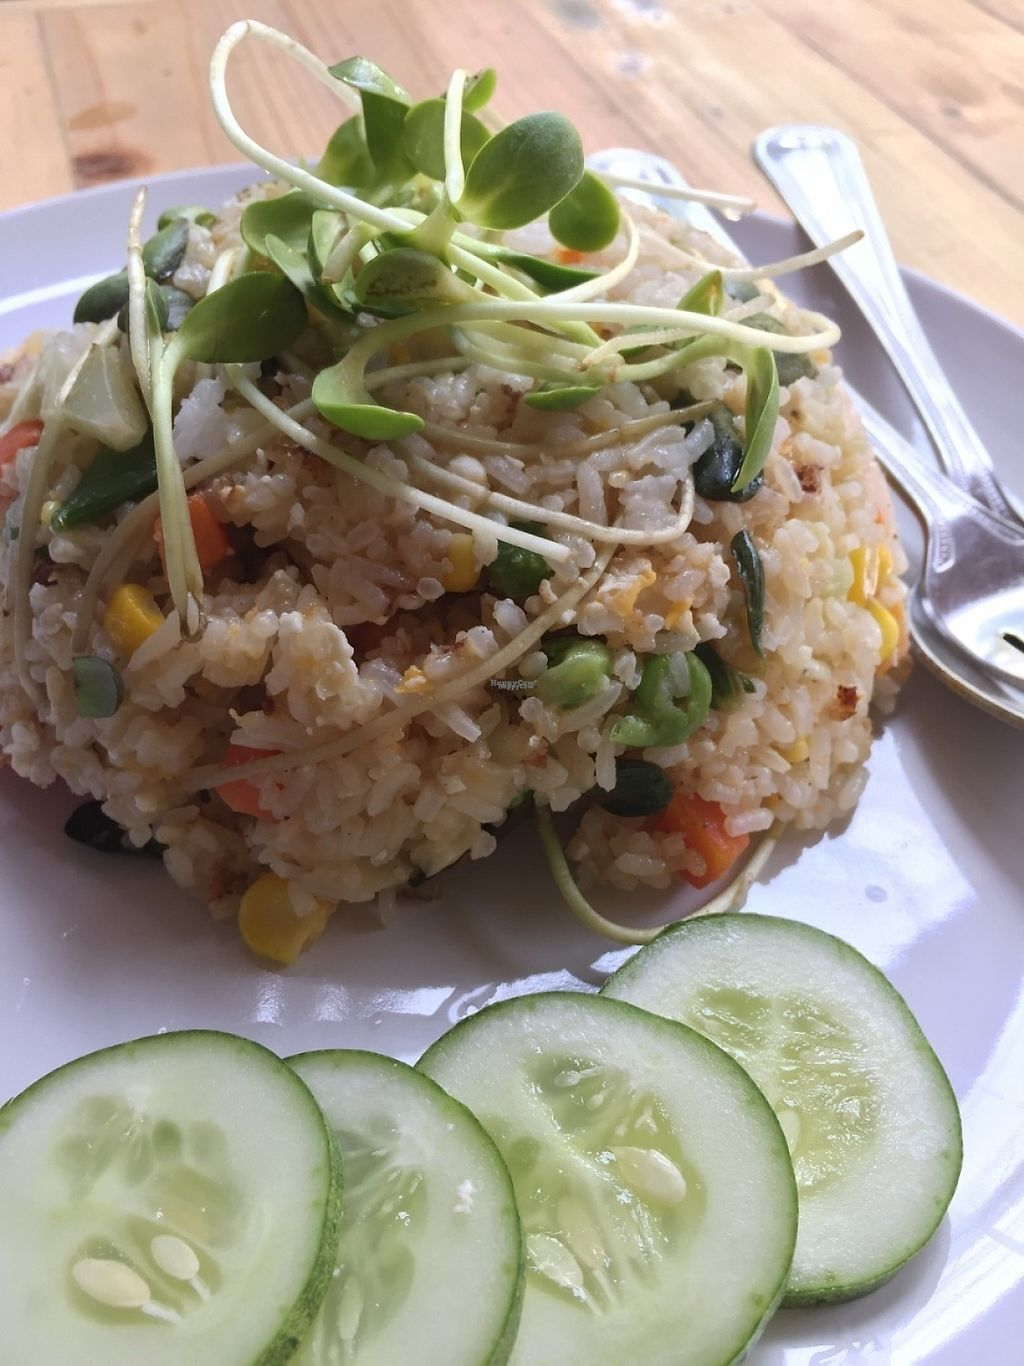 "Photo of Tofu  by <a href=""/members/profile/JuliaAnna"">JuliaAnna</a> <br/>Fried rice with vegetables.  <br/> March 5, 2017  - <a href='/contact/abuse/image/88087/232899'>Report</a>"